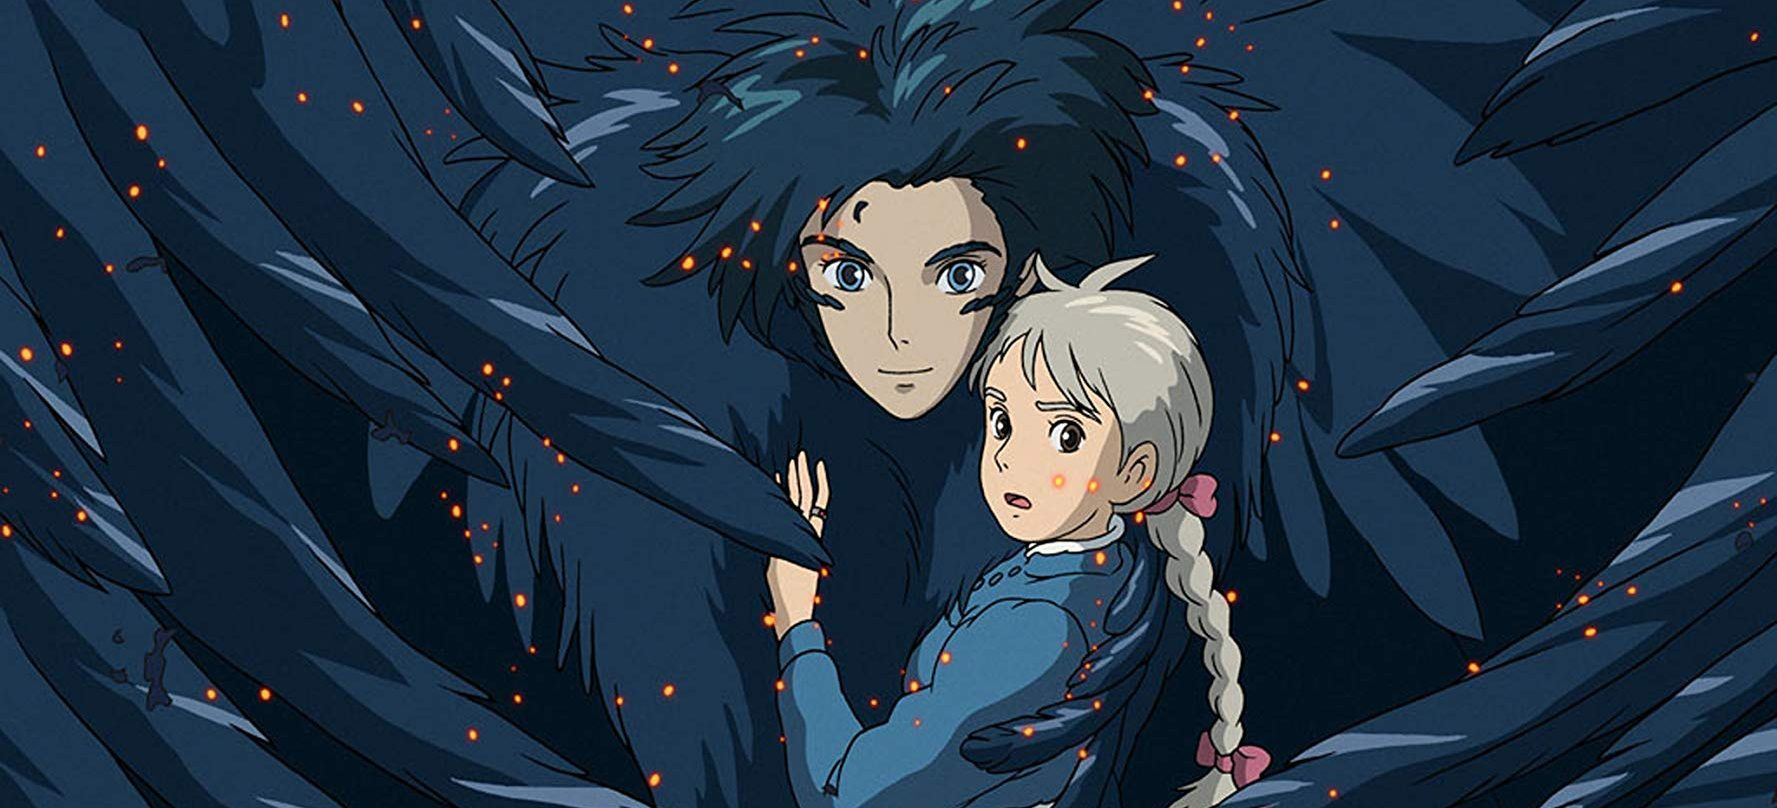 HBO Max Scoops Up the Streaming Rights to All Studio Ghibli Films